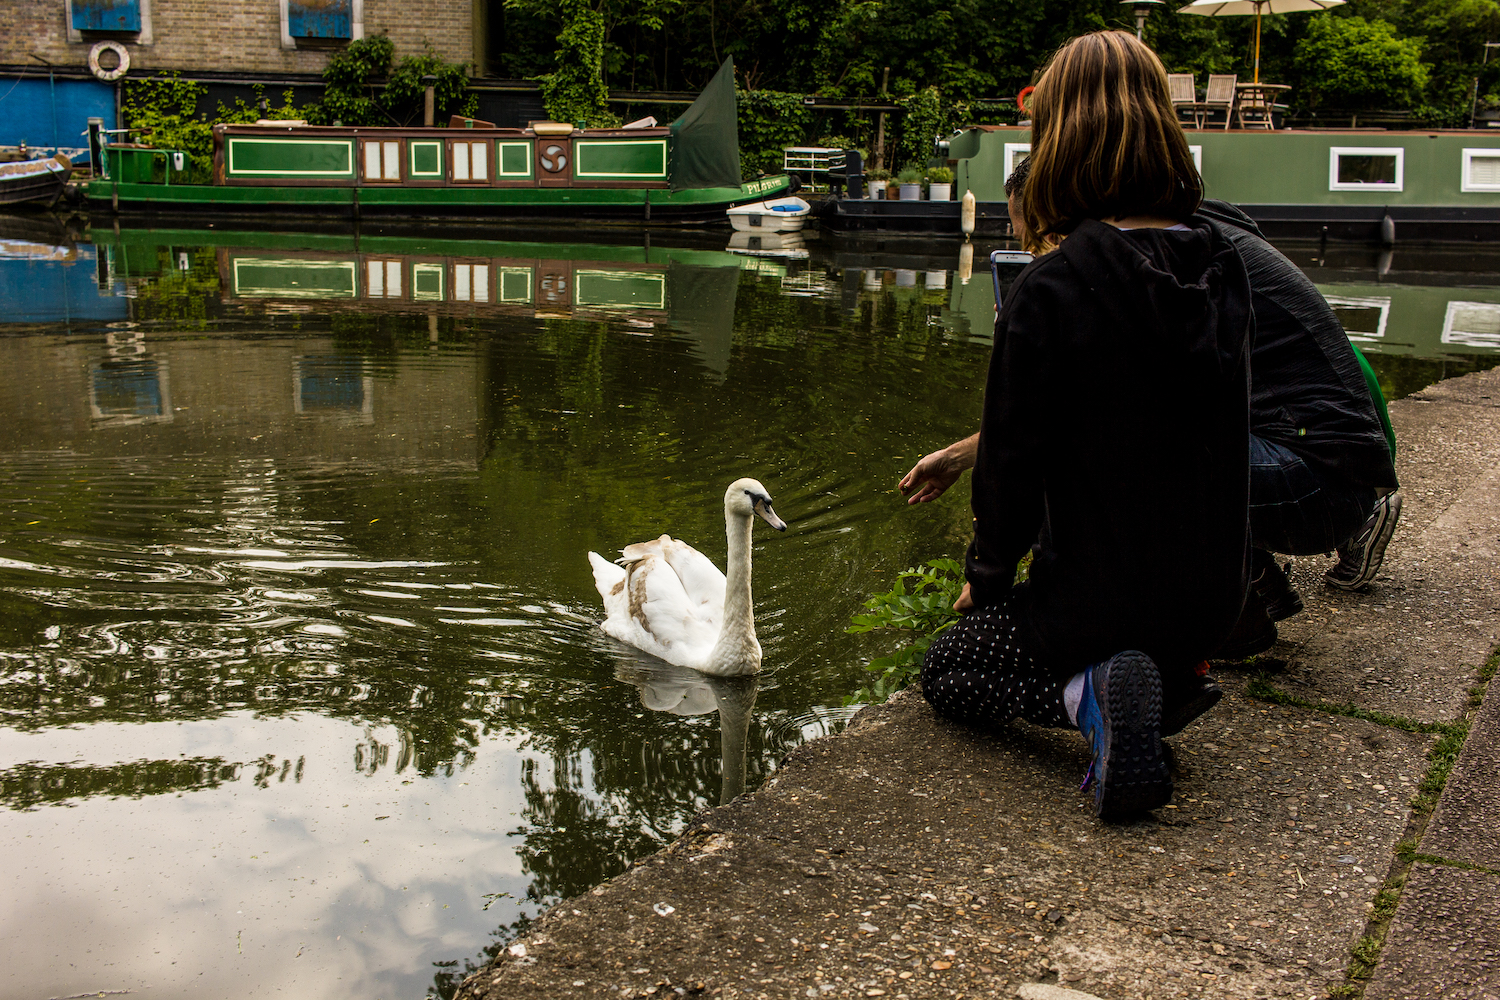 Professional Photography Two People Kneeling Feeding White Swan In Canal River With Barges In Background